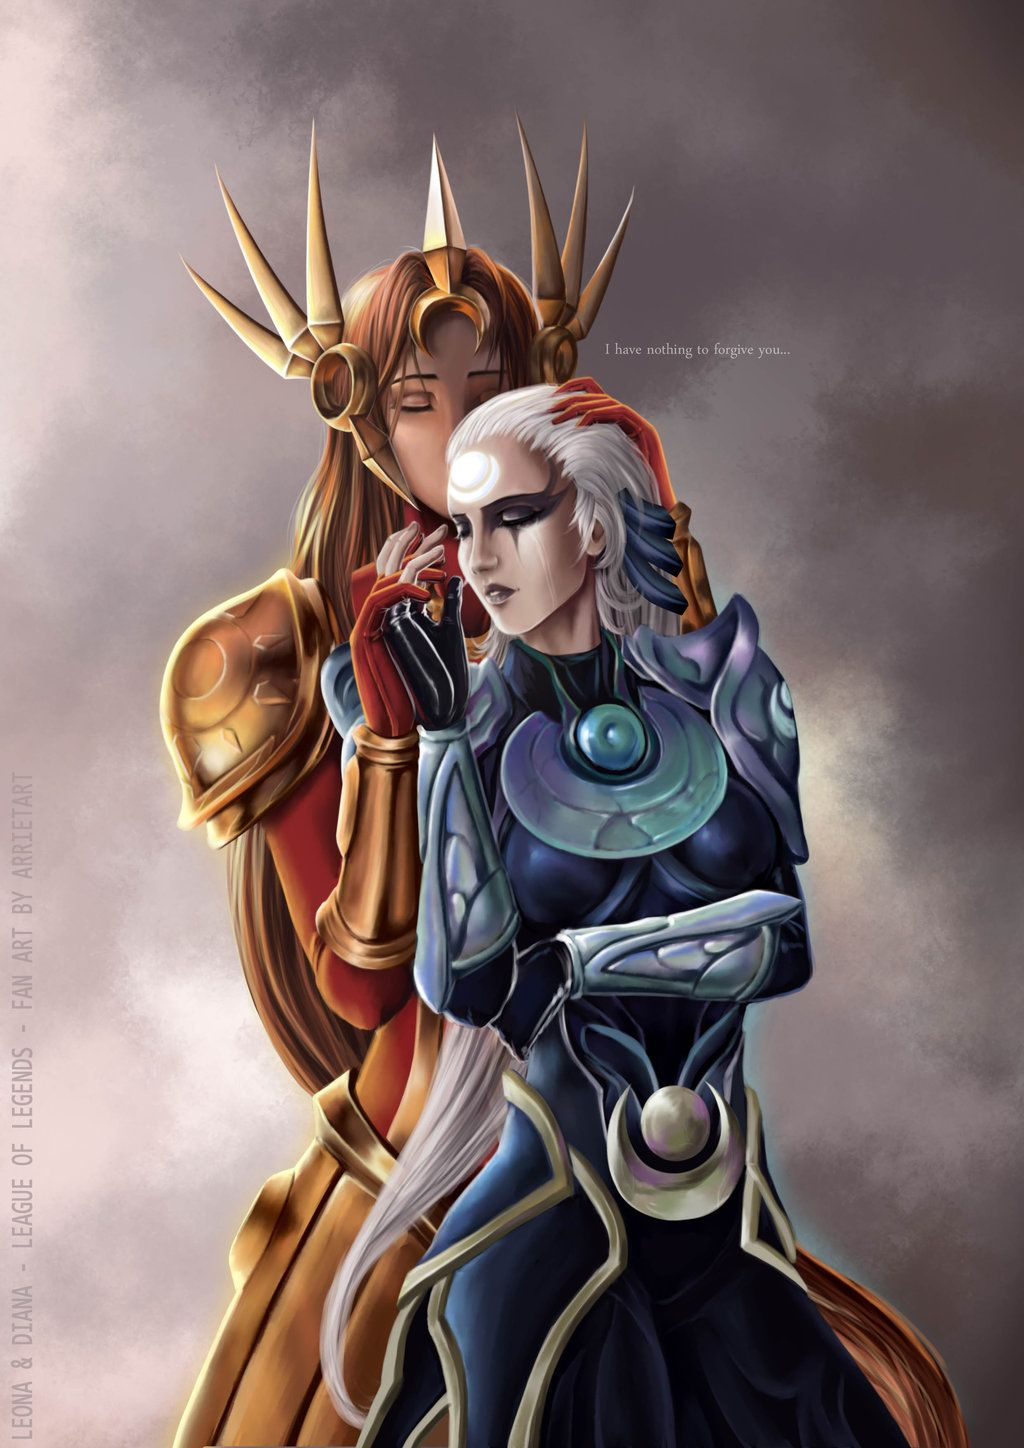 Leona x Diana League of Legends by Arrietart | Diana ...